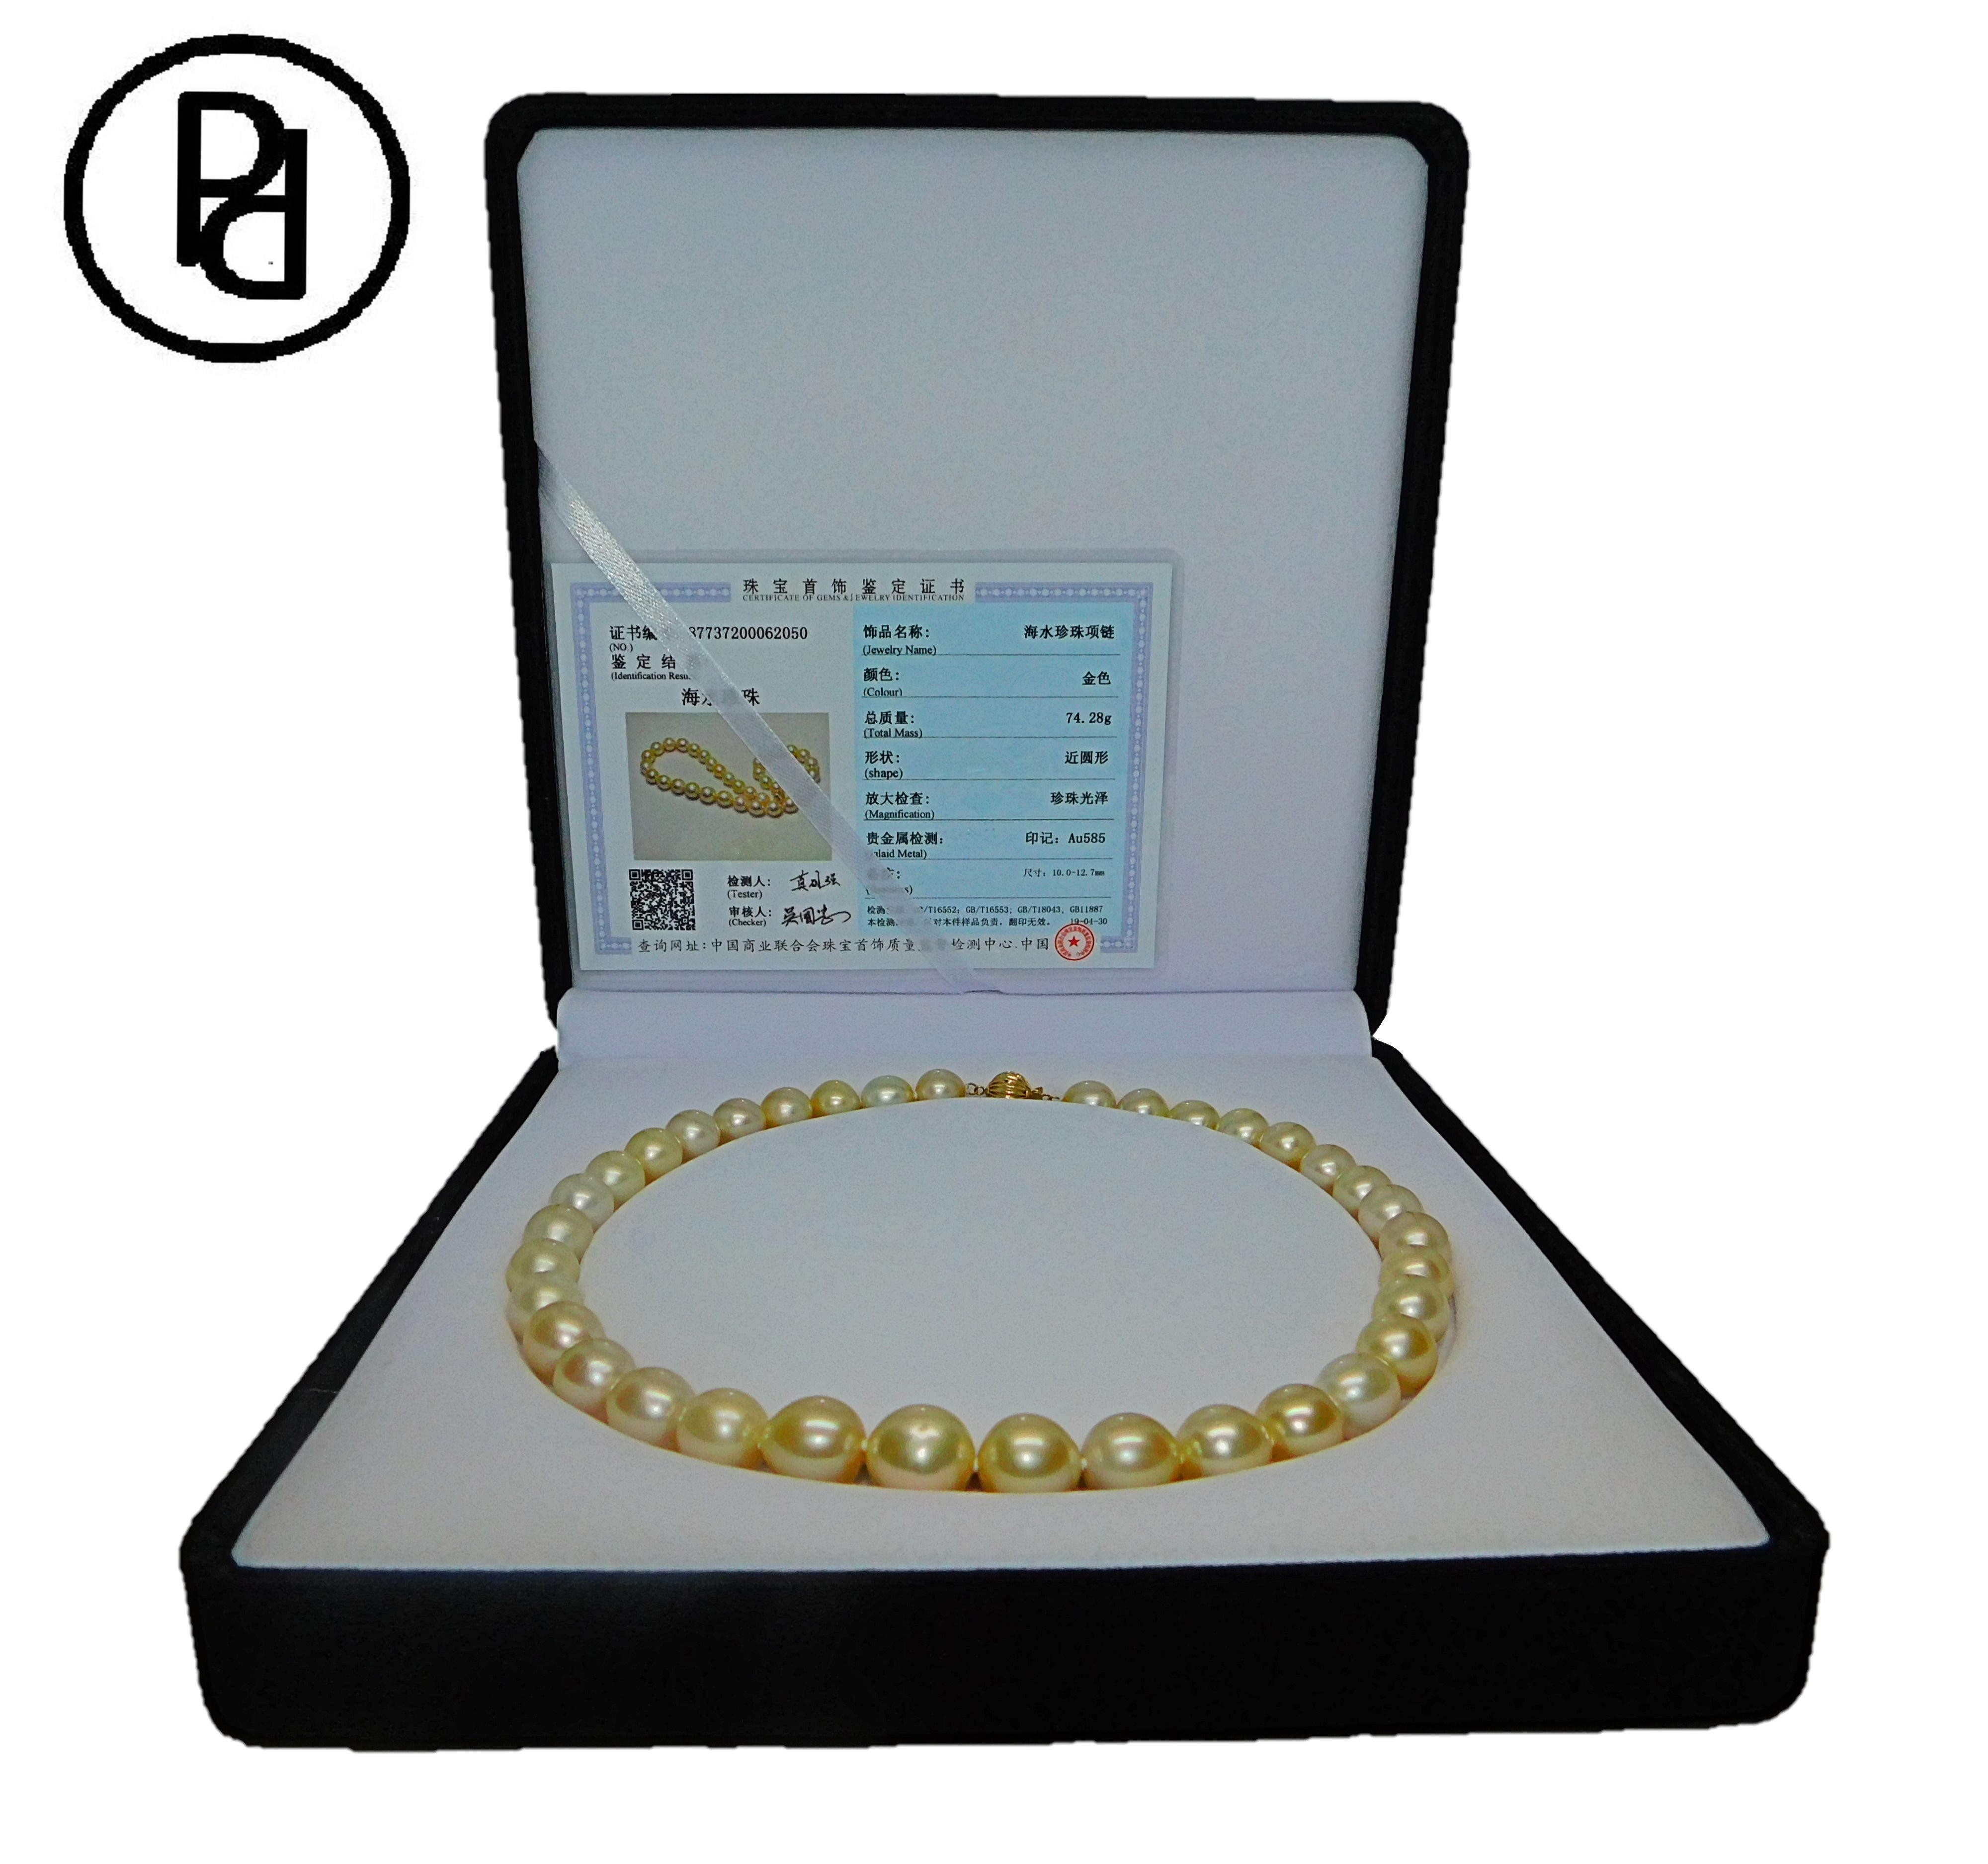 This elegant necklace features 12.0-15.0mm Gold South Sea pearls, handpicked for their luminous luster